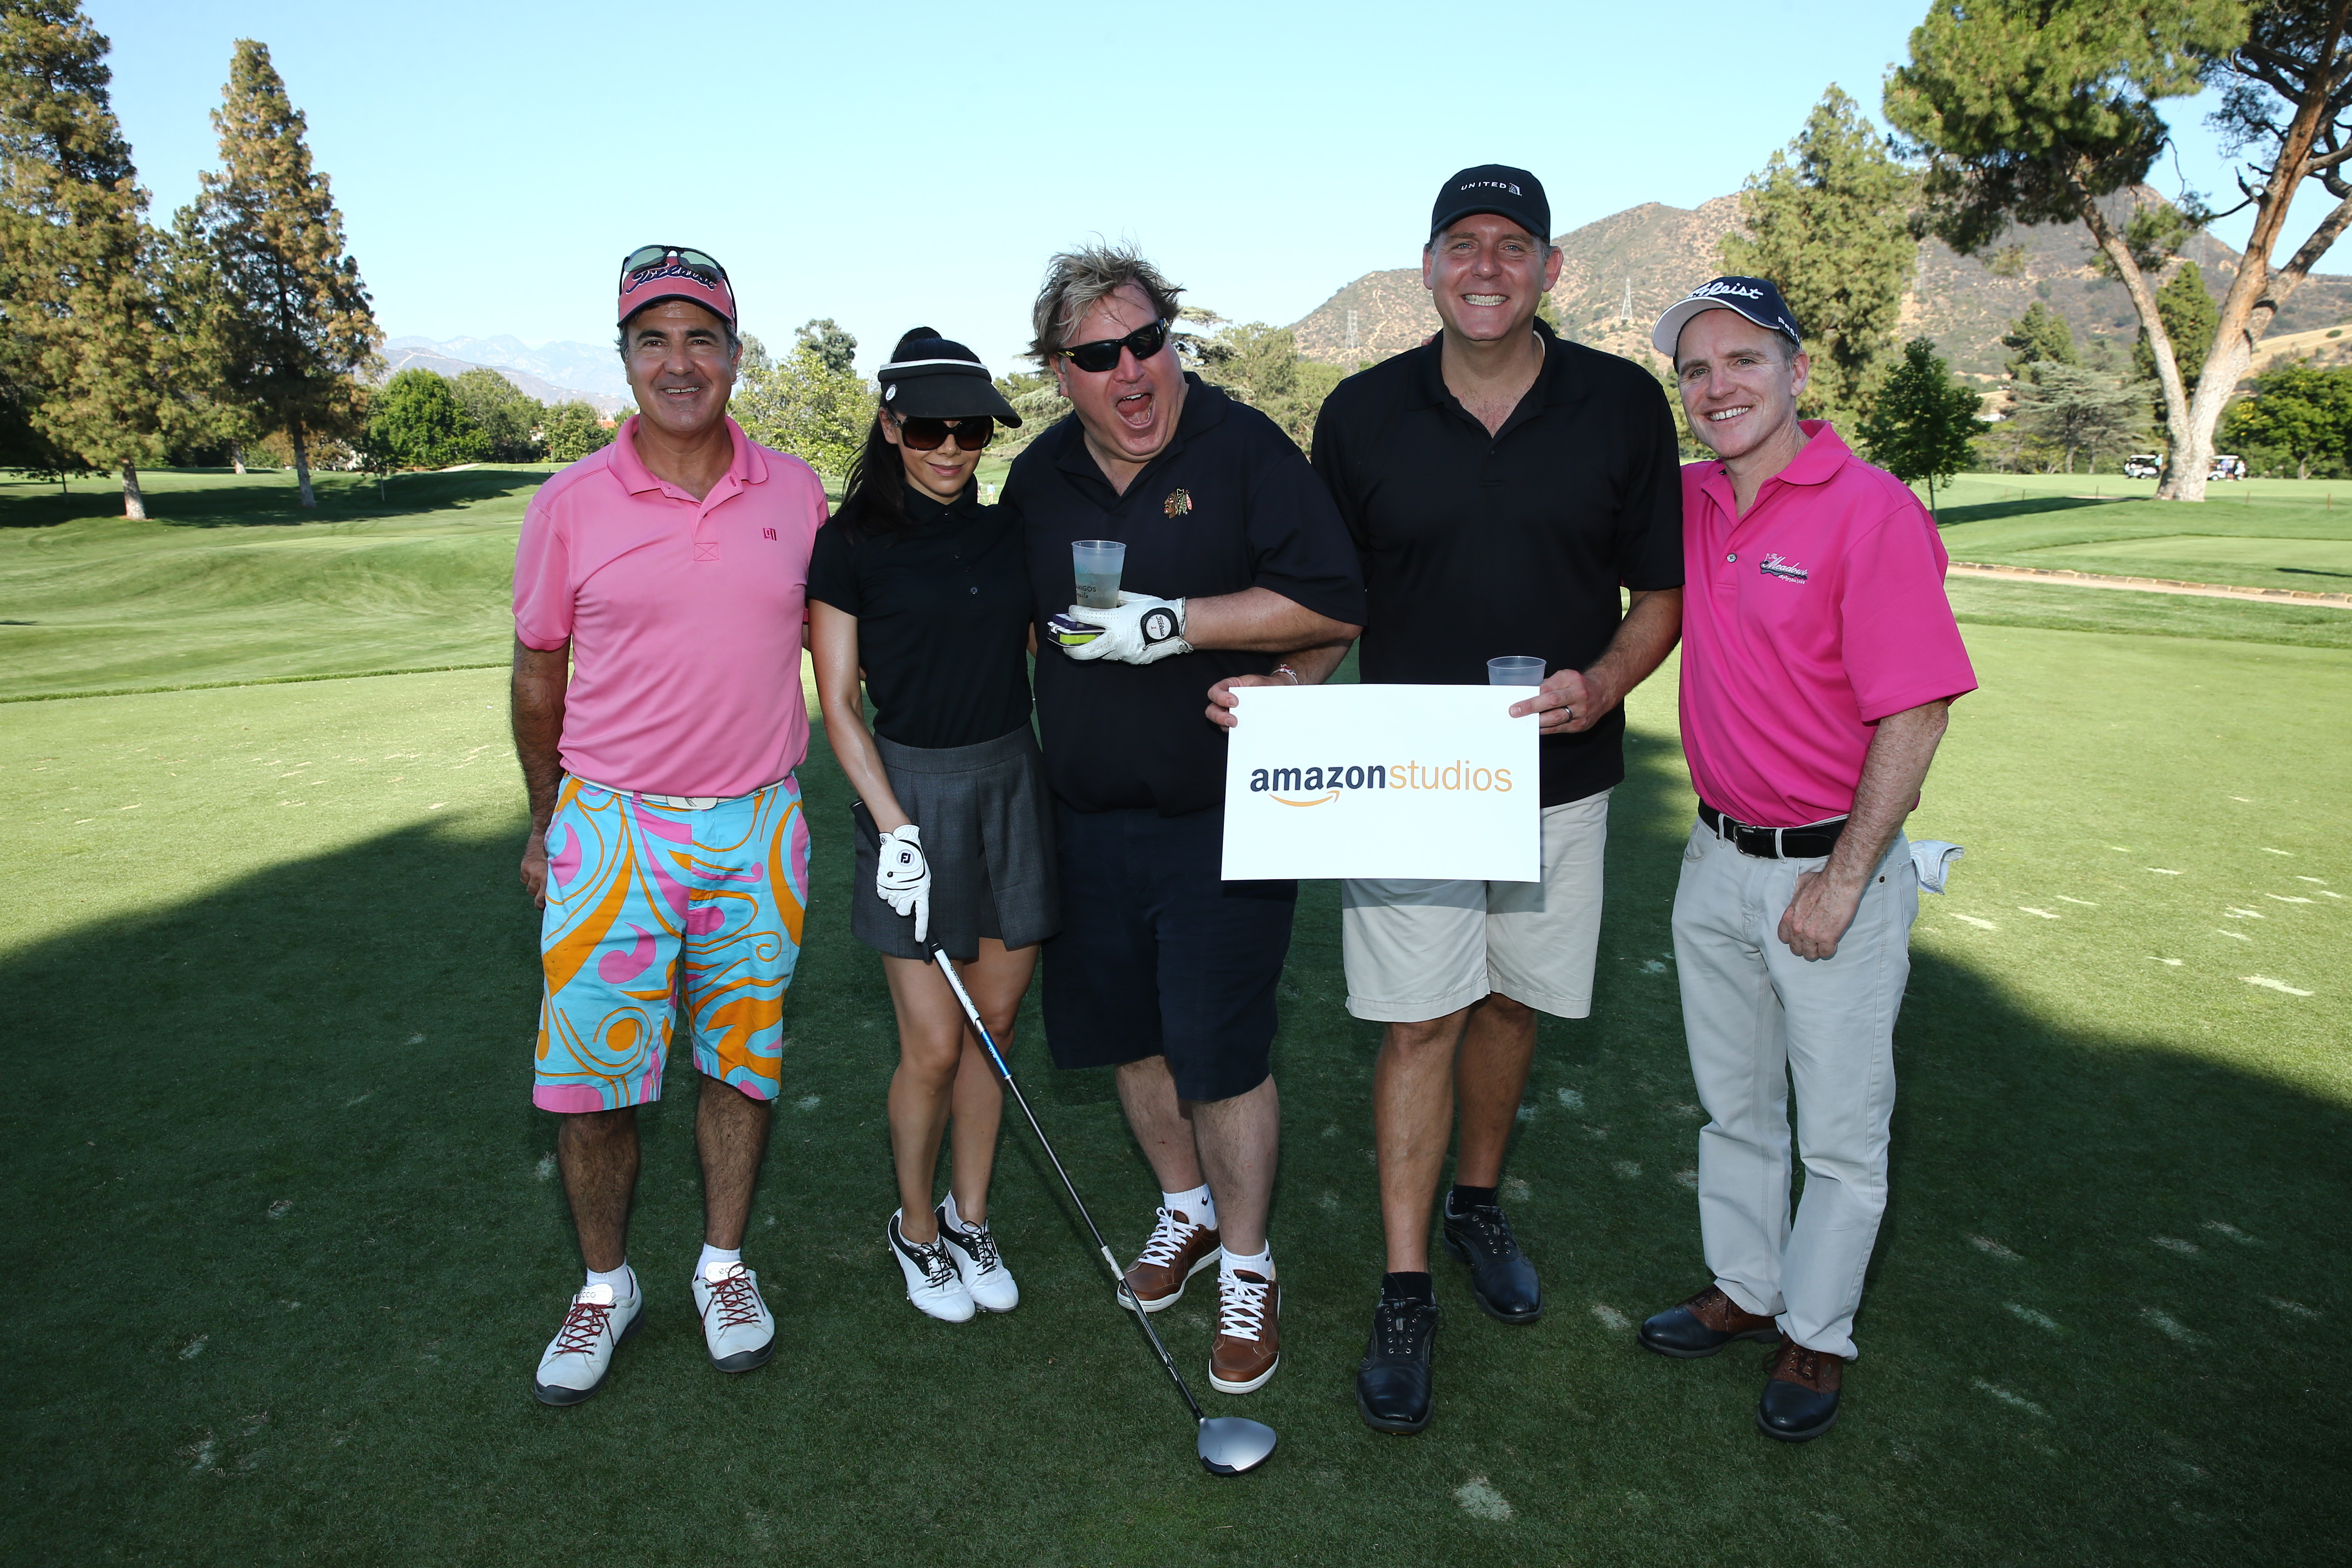 Jackie Flynn, Aimee Garcia, Jim Michaels, Robert Porter and Greg Fitzsimmons of Team Amazon Studios play at the Screen Actors Guild Foundation's 6th Annual Los Angeles Golf Classic on June 8, 2015 in Burbank, California. (Photo by Mark Davis/Getty Images for The Screen Actors Guild Foundation)